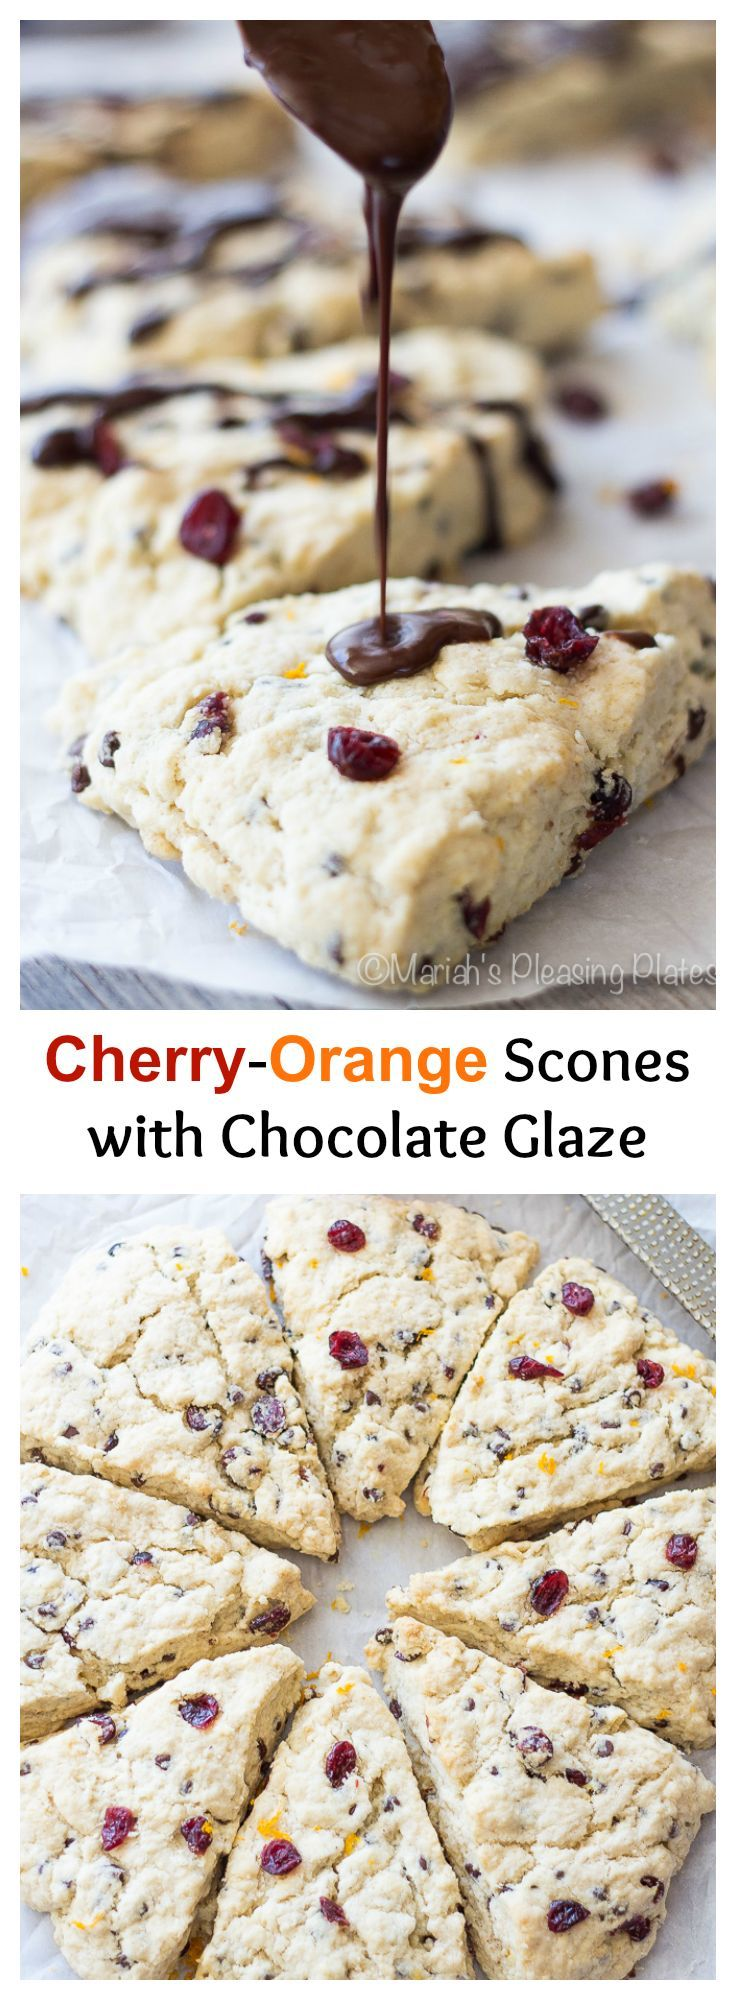 Sour cherry and orange scones with a chocolate ganache glaze. These scones are full of mini chocolate chips, dried sour cherries, and fresh orange juice.